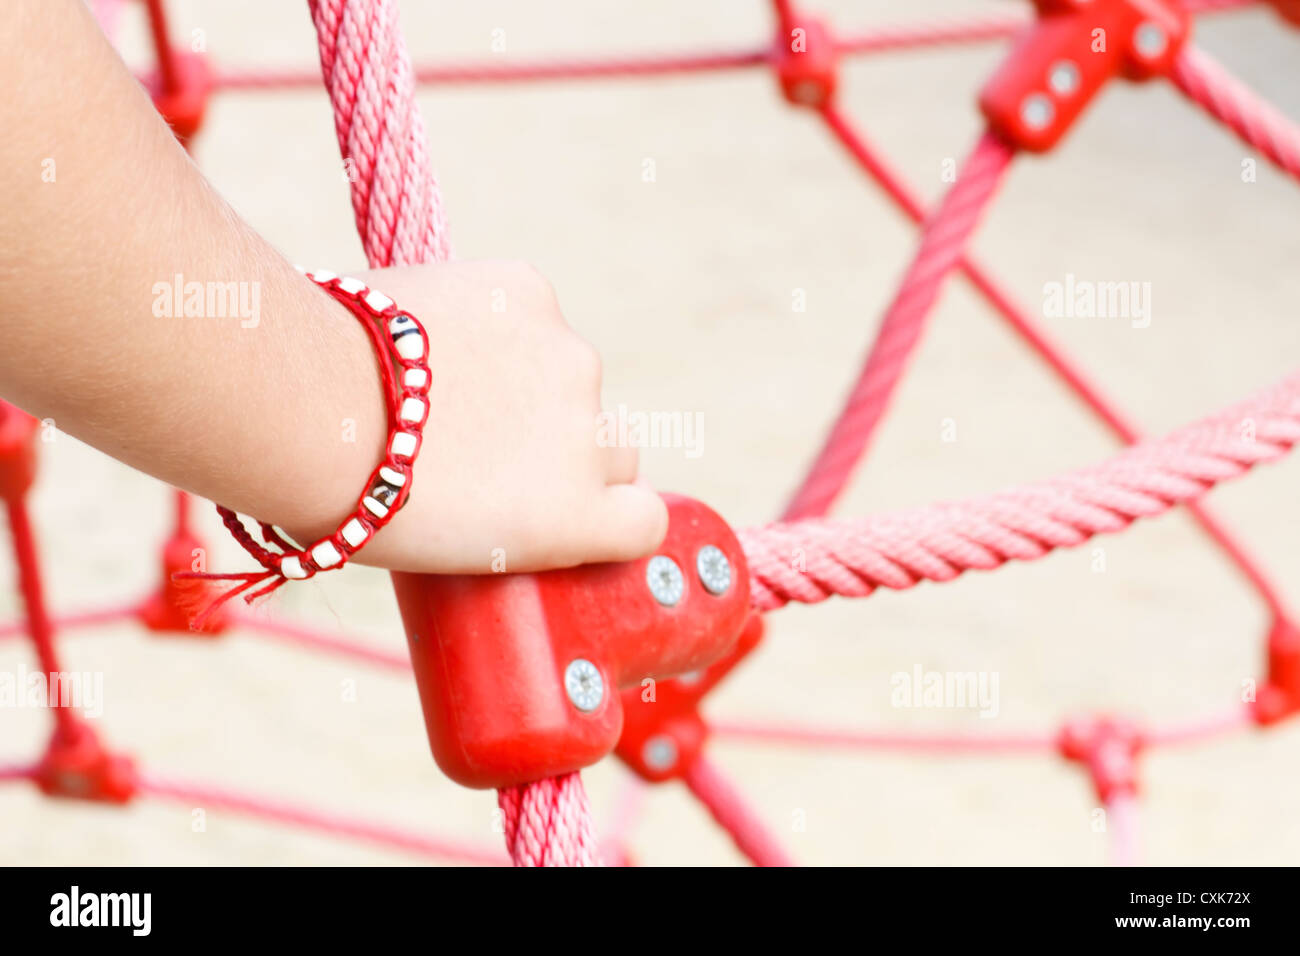 Boy's (6-7) hand holding red rope, France. - Stock Image